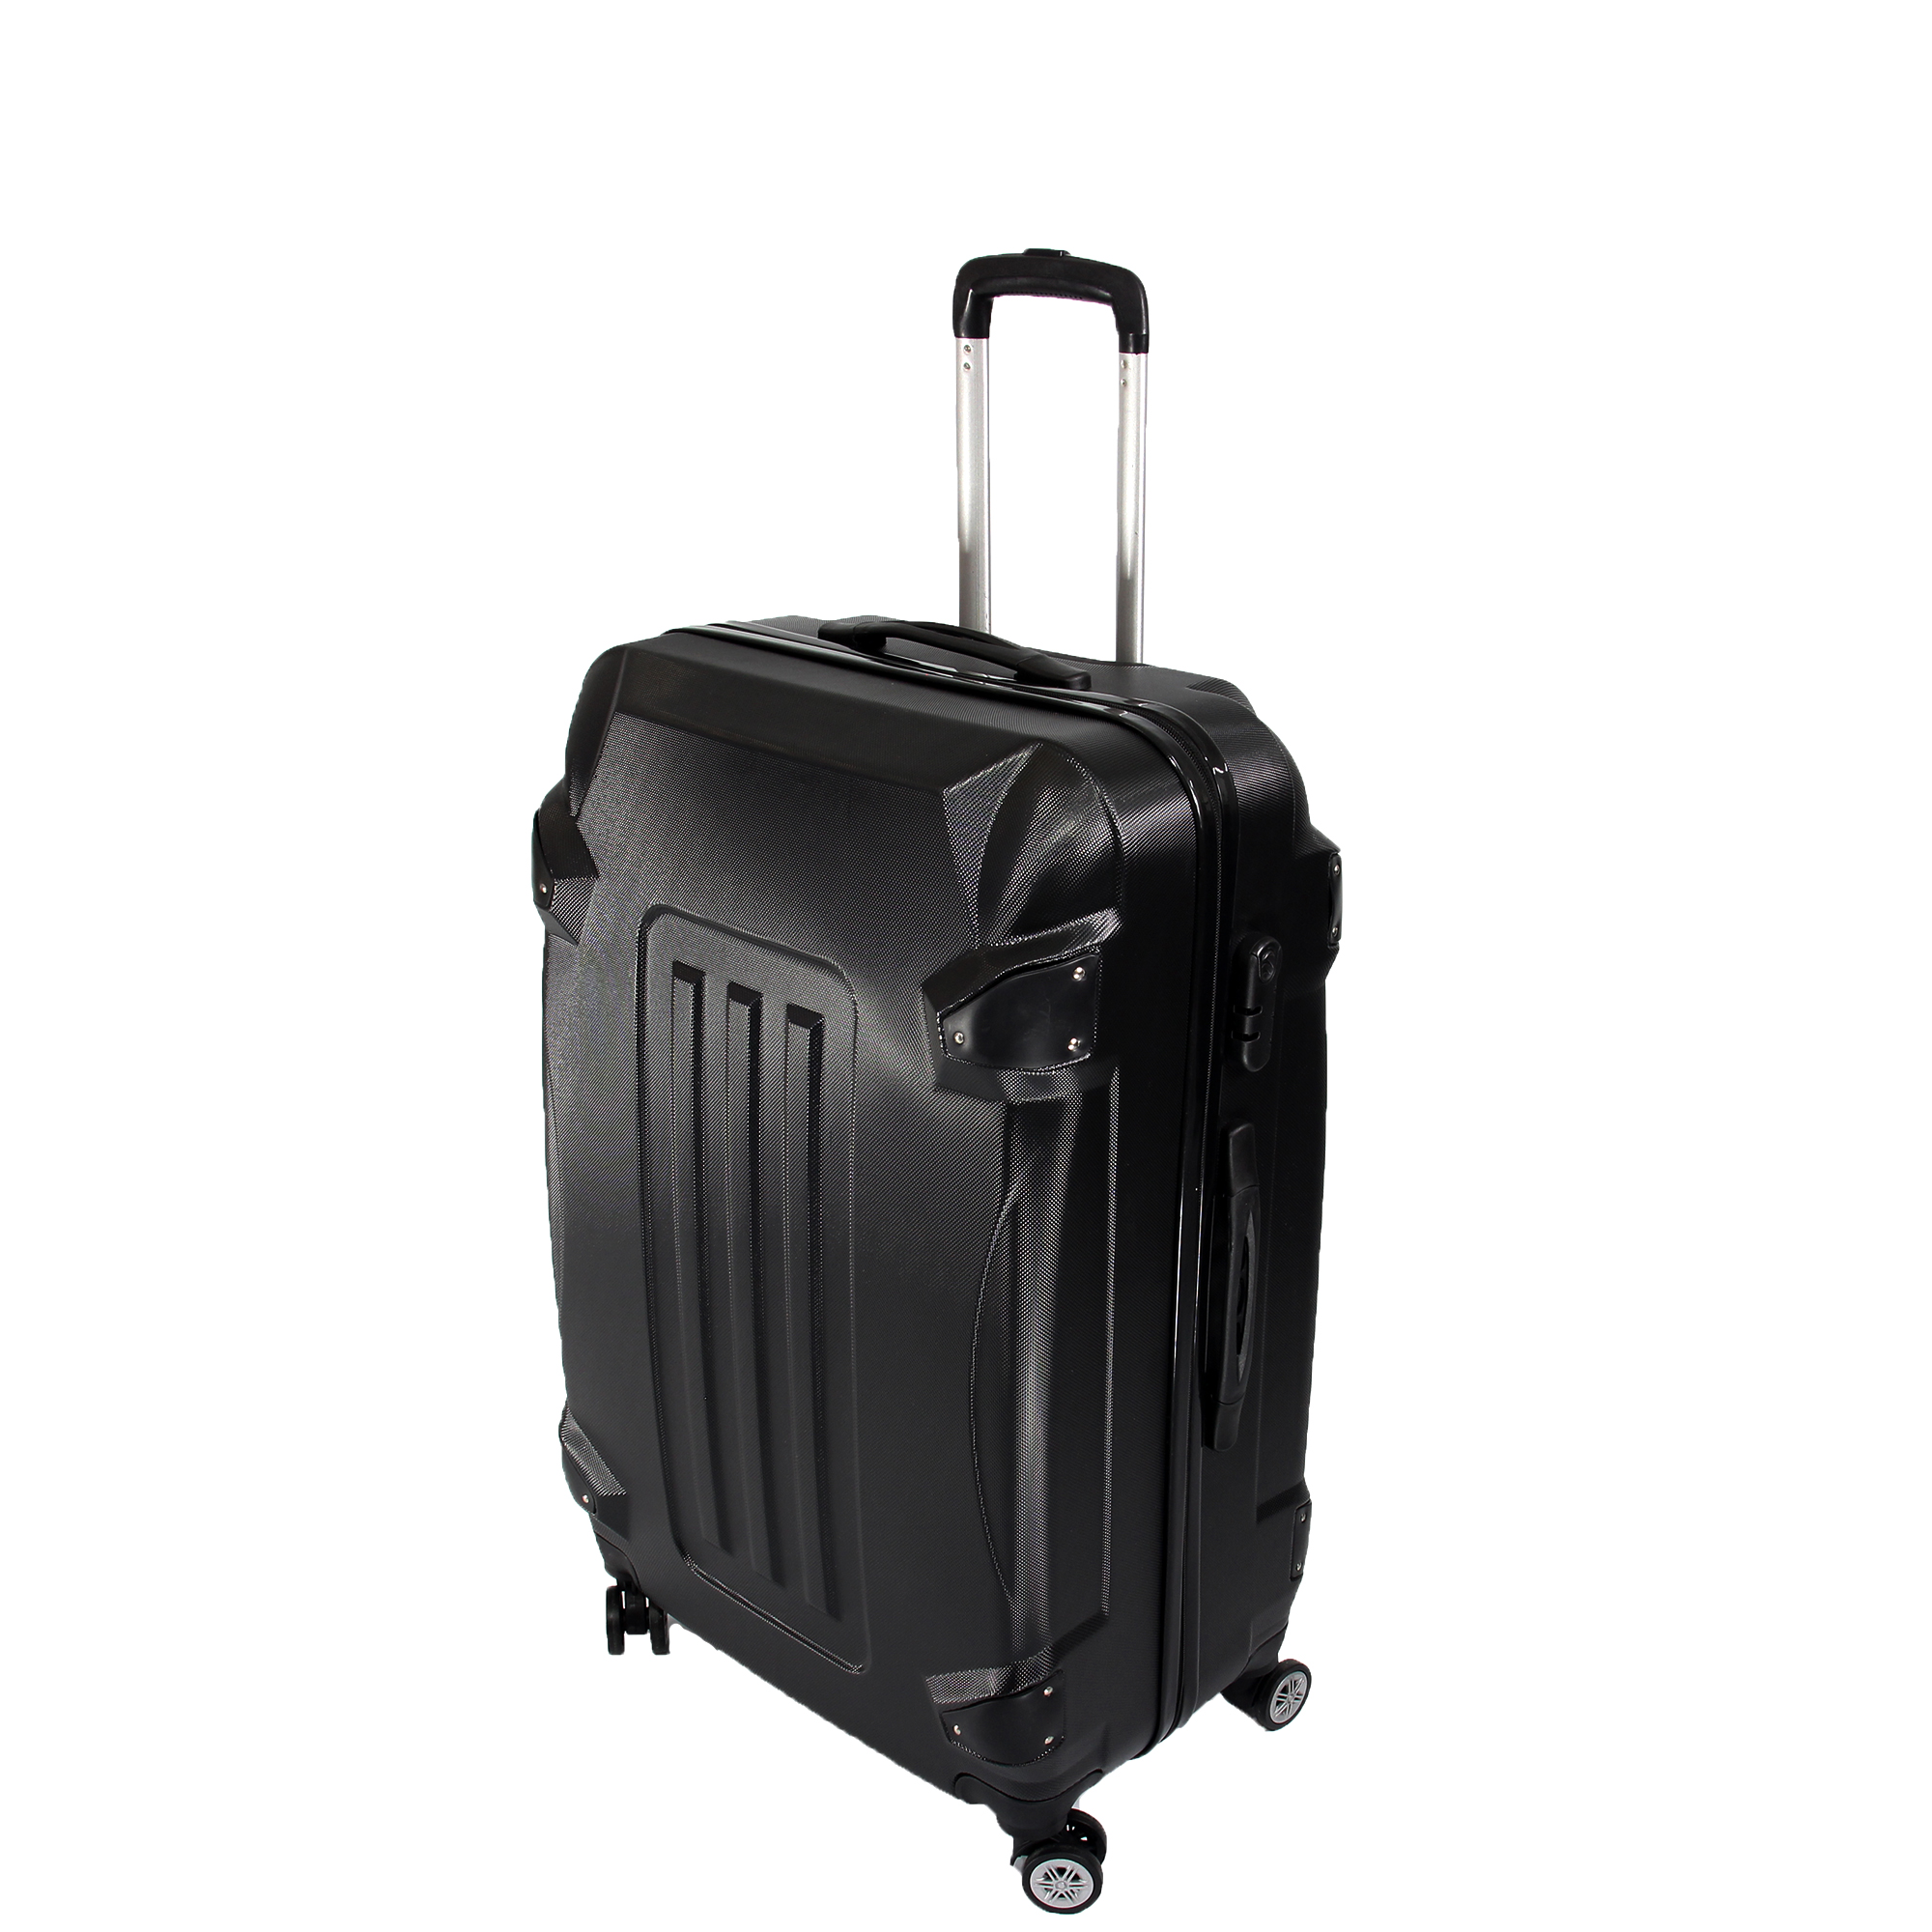 ultraleichte koffer rimowa trolleys aus titanium ultraleichte koffer f r samsonite koffer. Black Bedroom Furniture Sets. Home Design Ideas